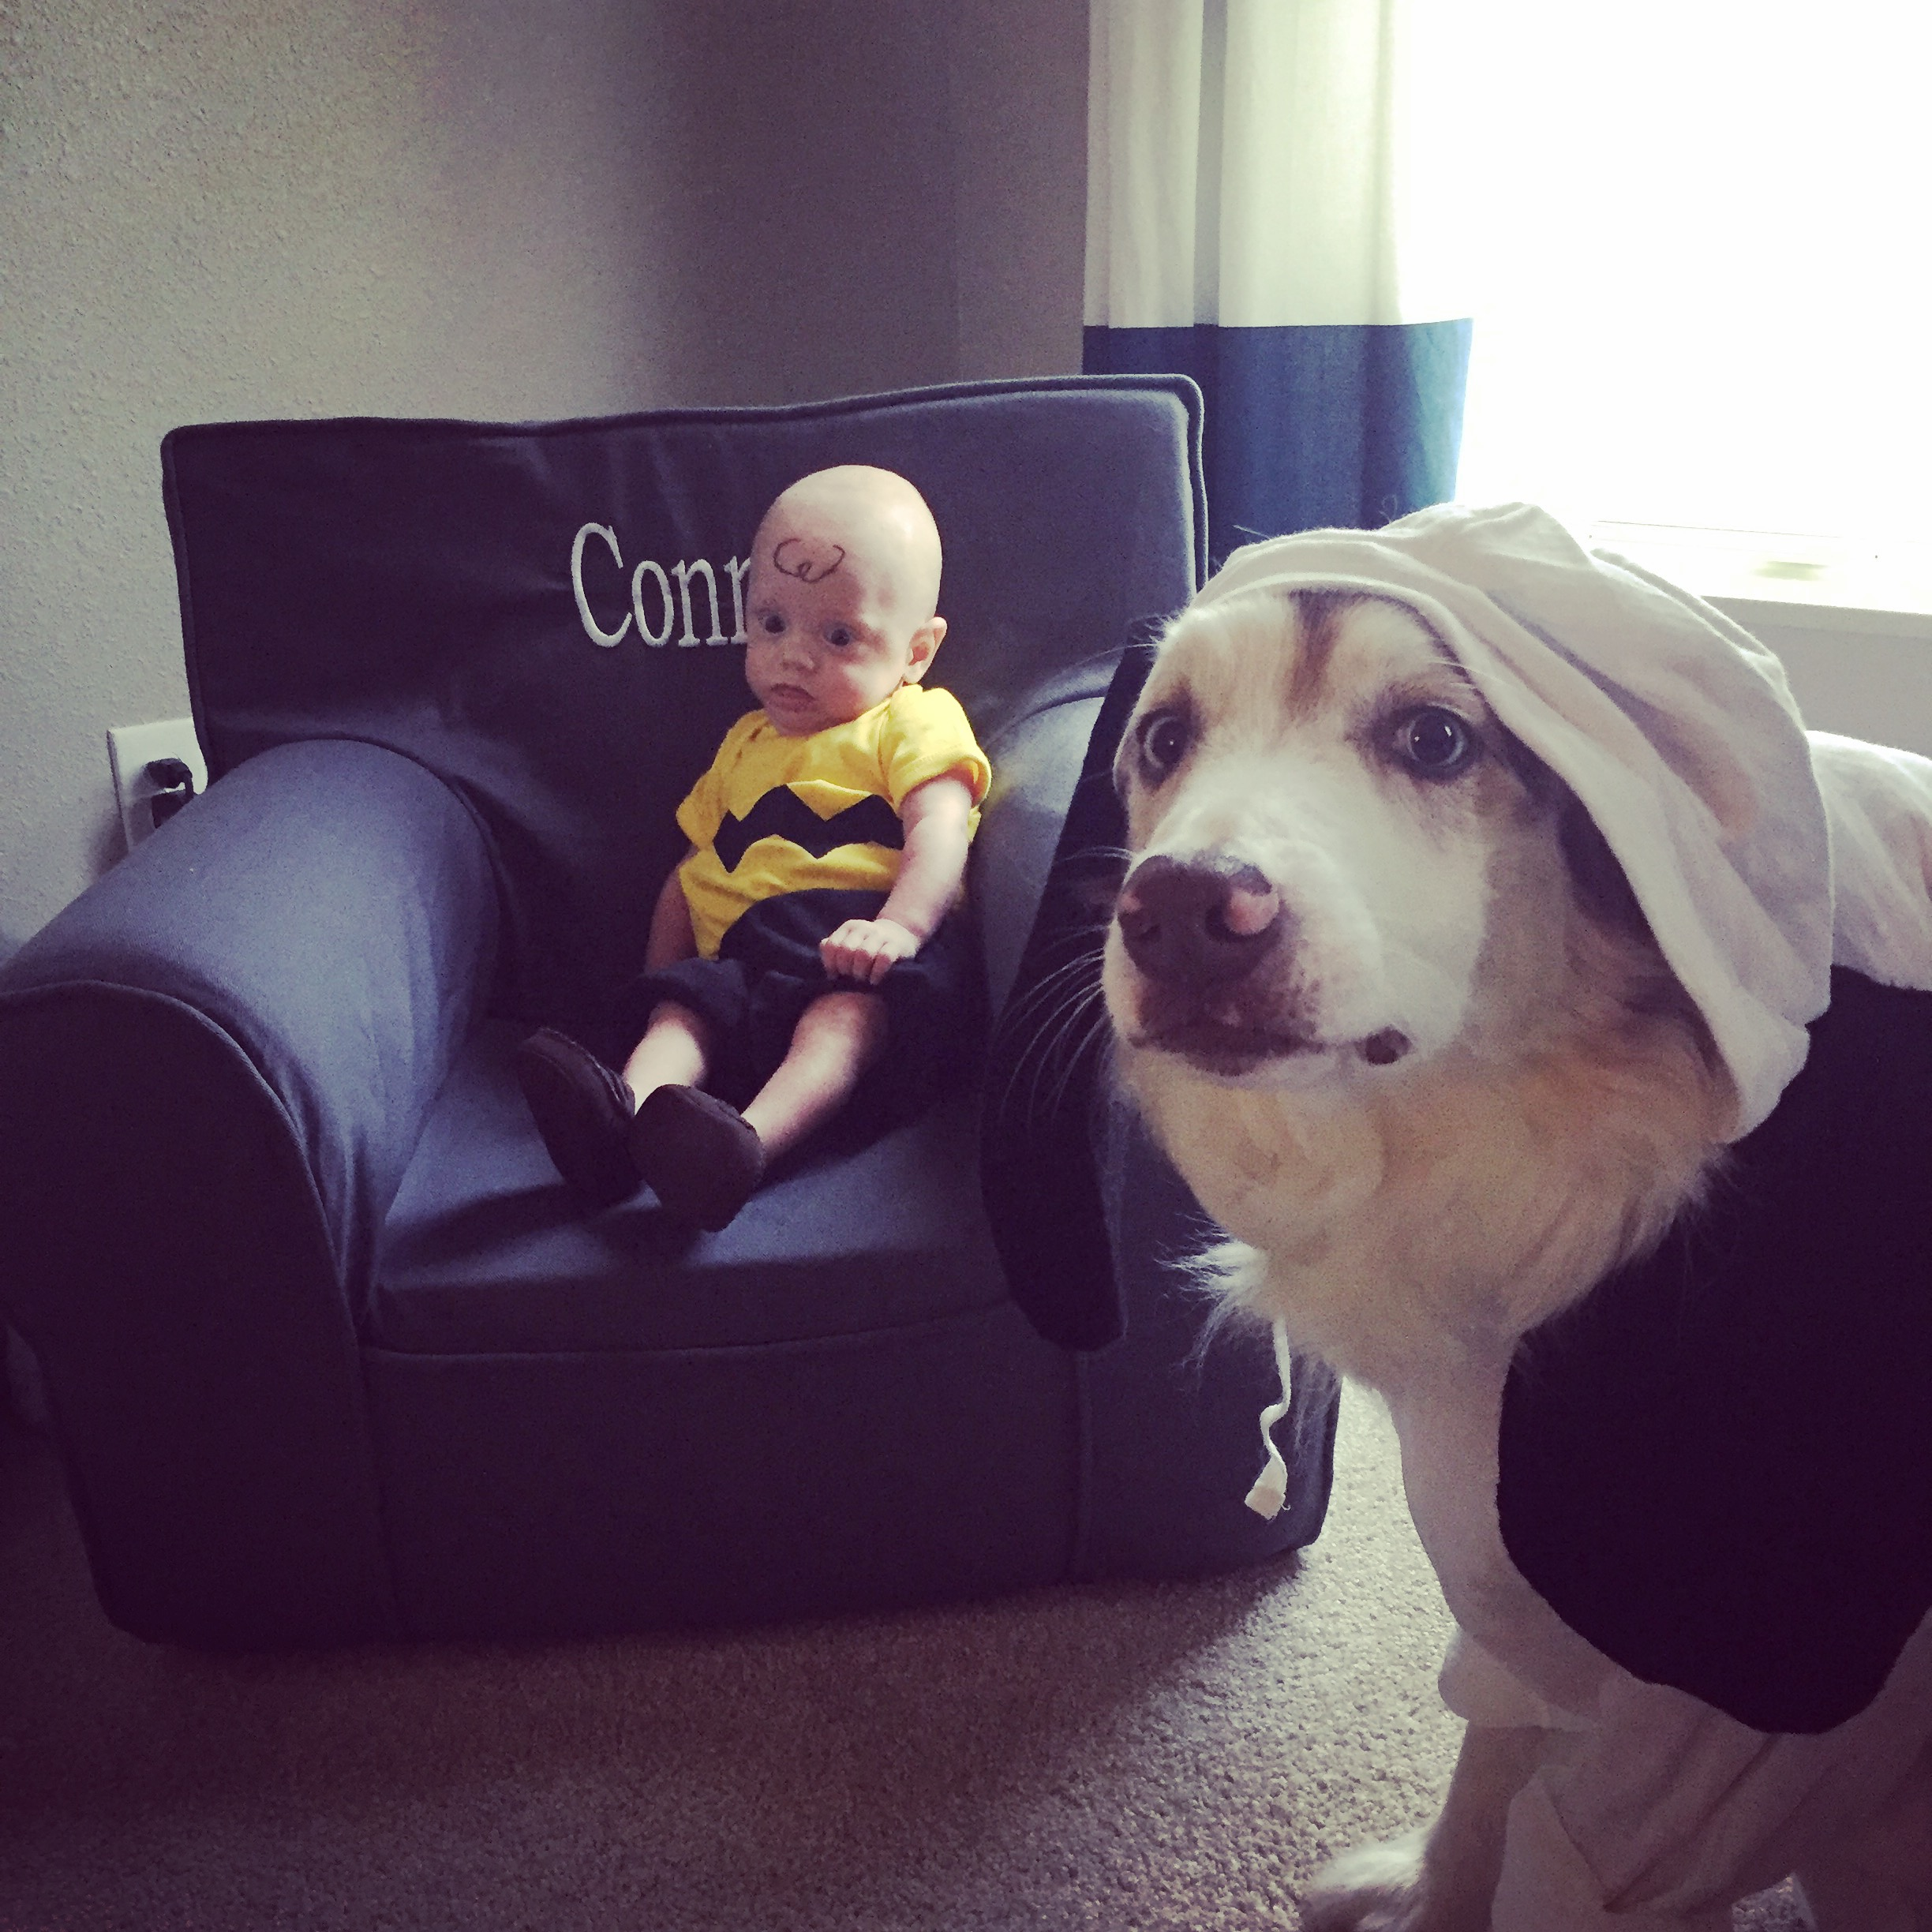 First Halloween - Charlie Brown and Snoopy!